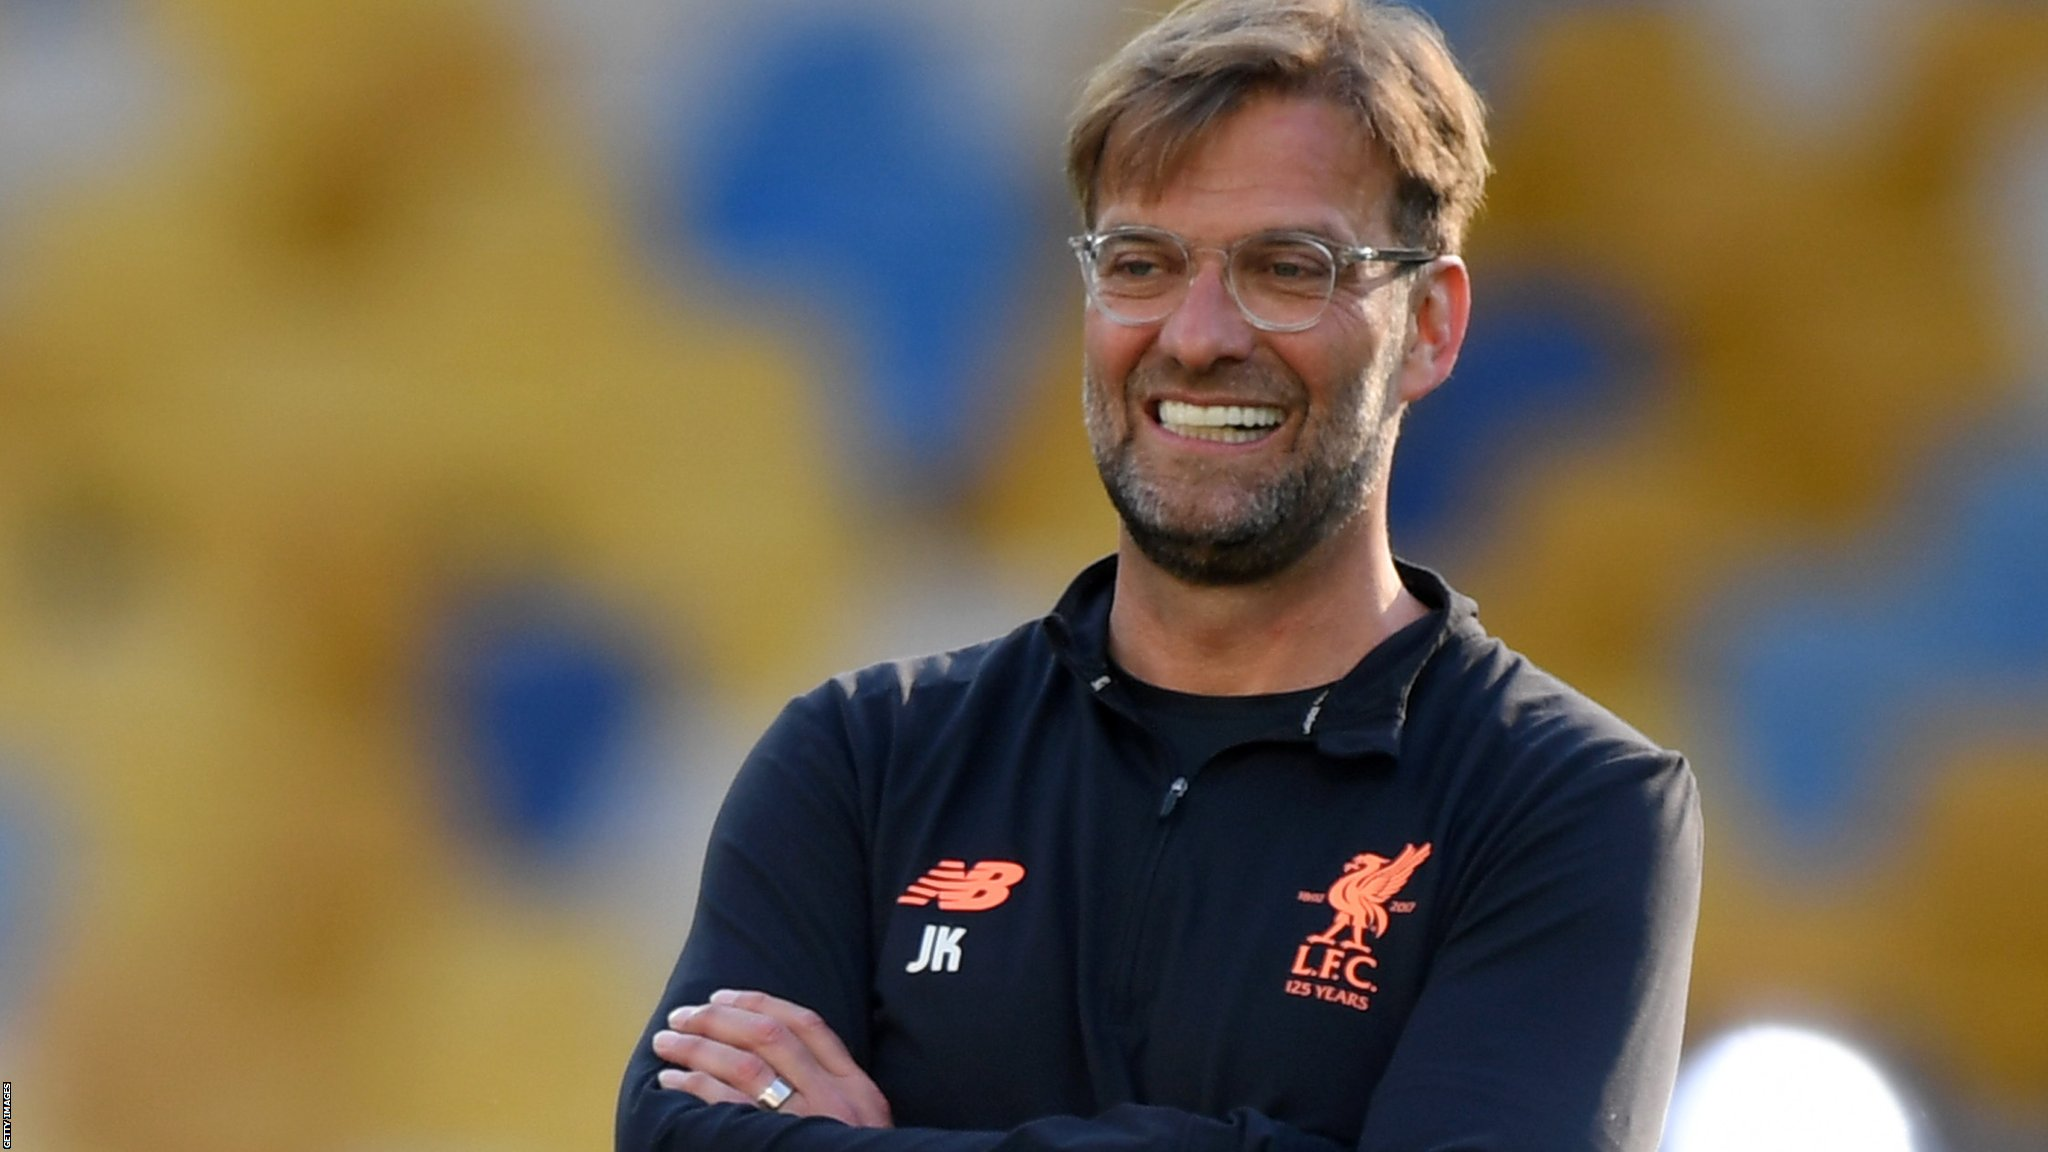 'Only a matter of time' before Klopp wins trophies